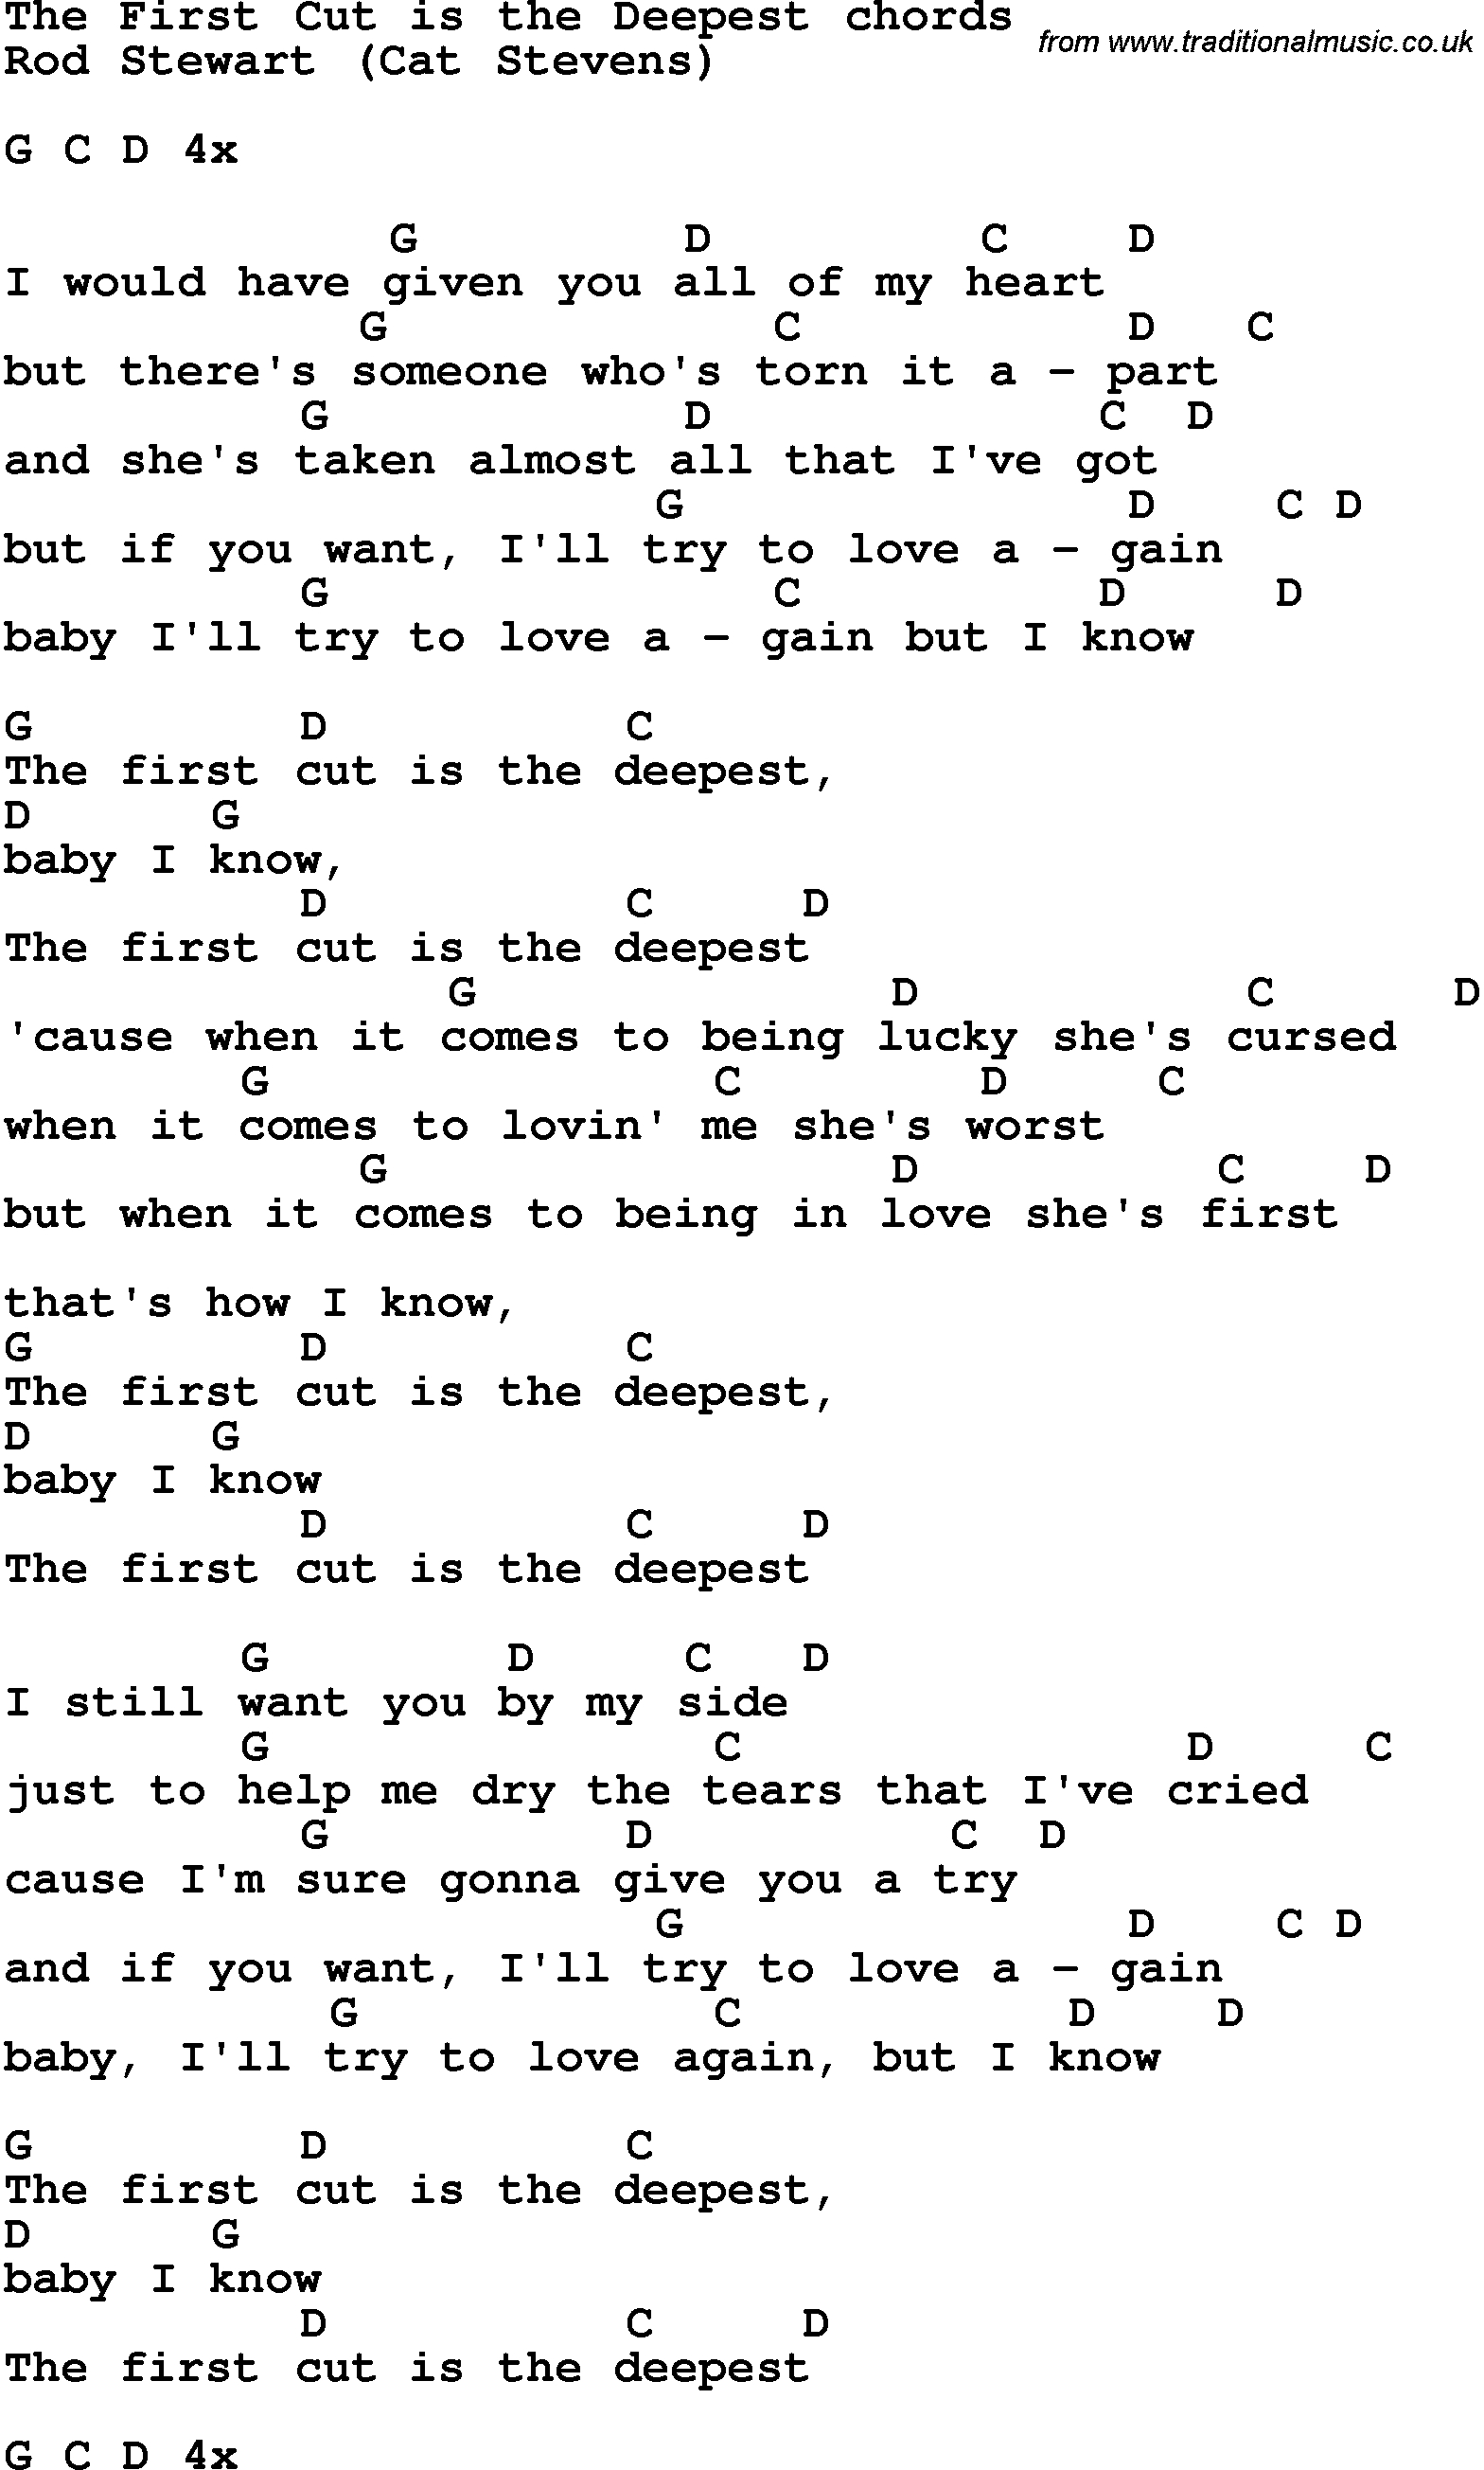 Song Lyrics With Guitar Chords For The First Cut Is The Deepest - Free Printable Song Lyrics With Guitar Chords